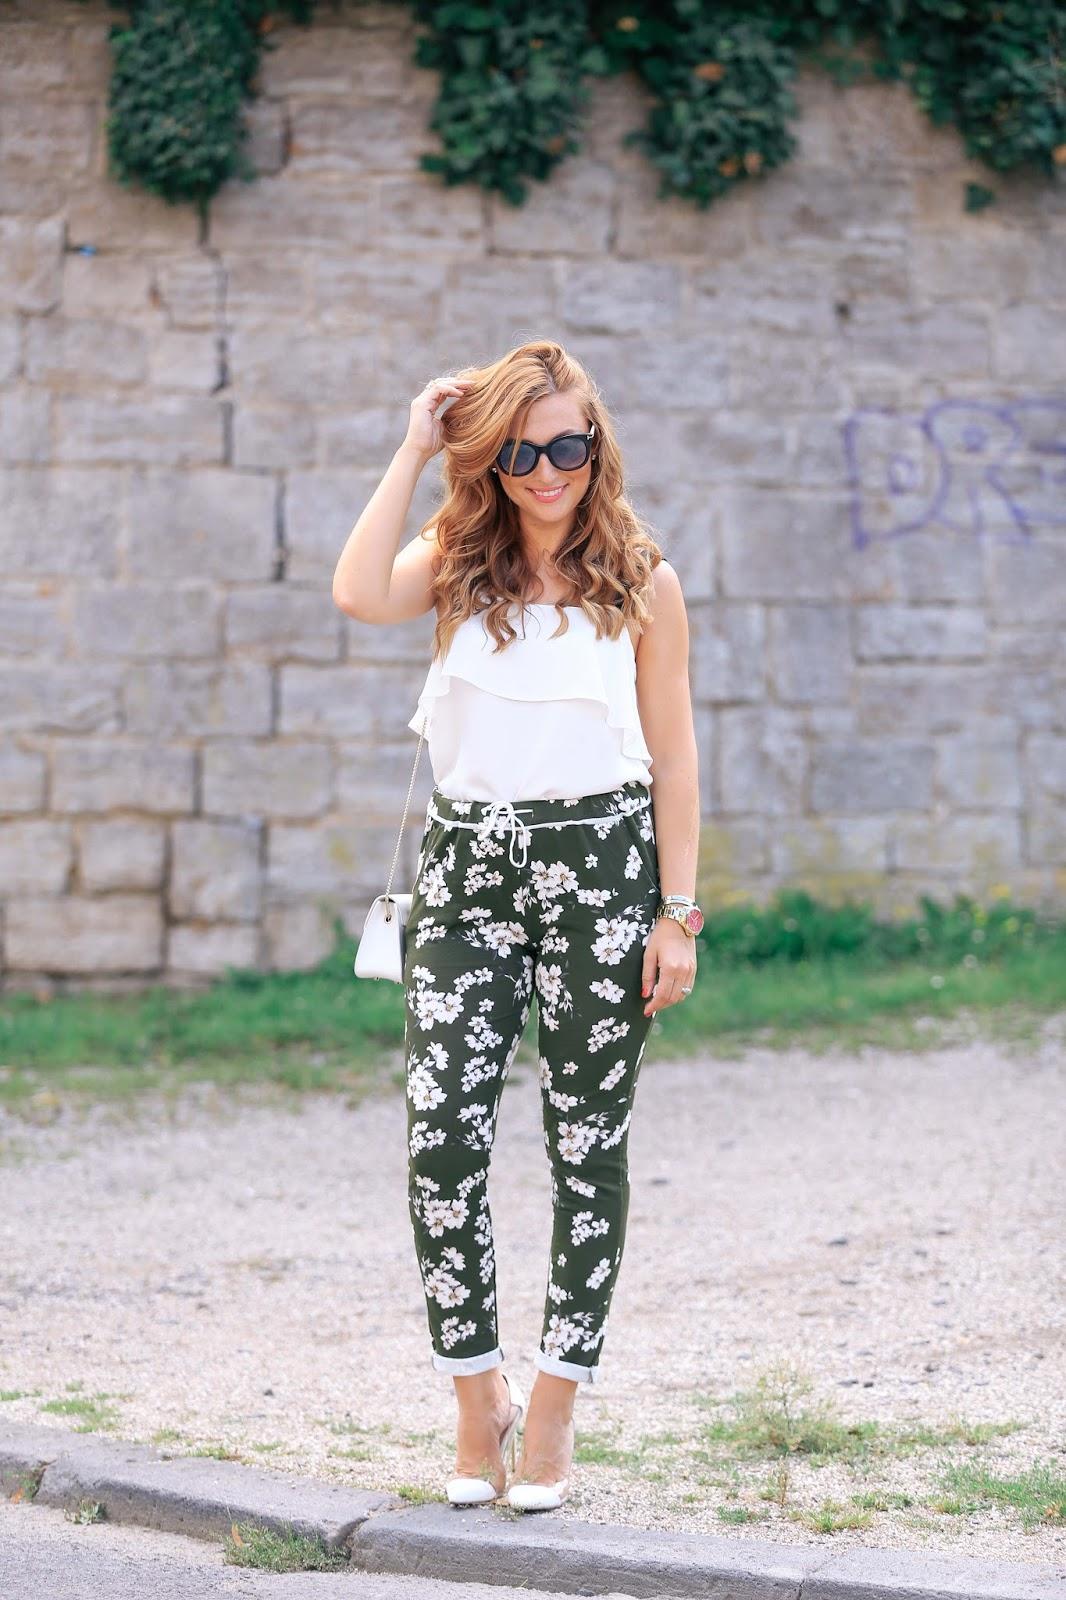 Fashionstylebyjohanna-Blogger-outfit-was-ziehen-blogger-an-fashionstylebyjohanna-deutsche-fashionblogger